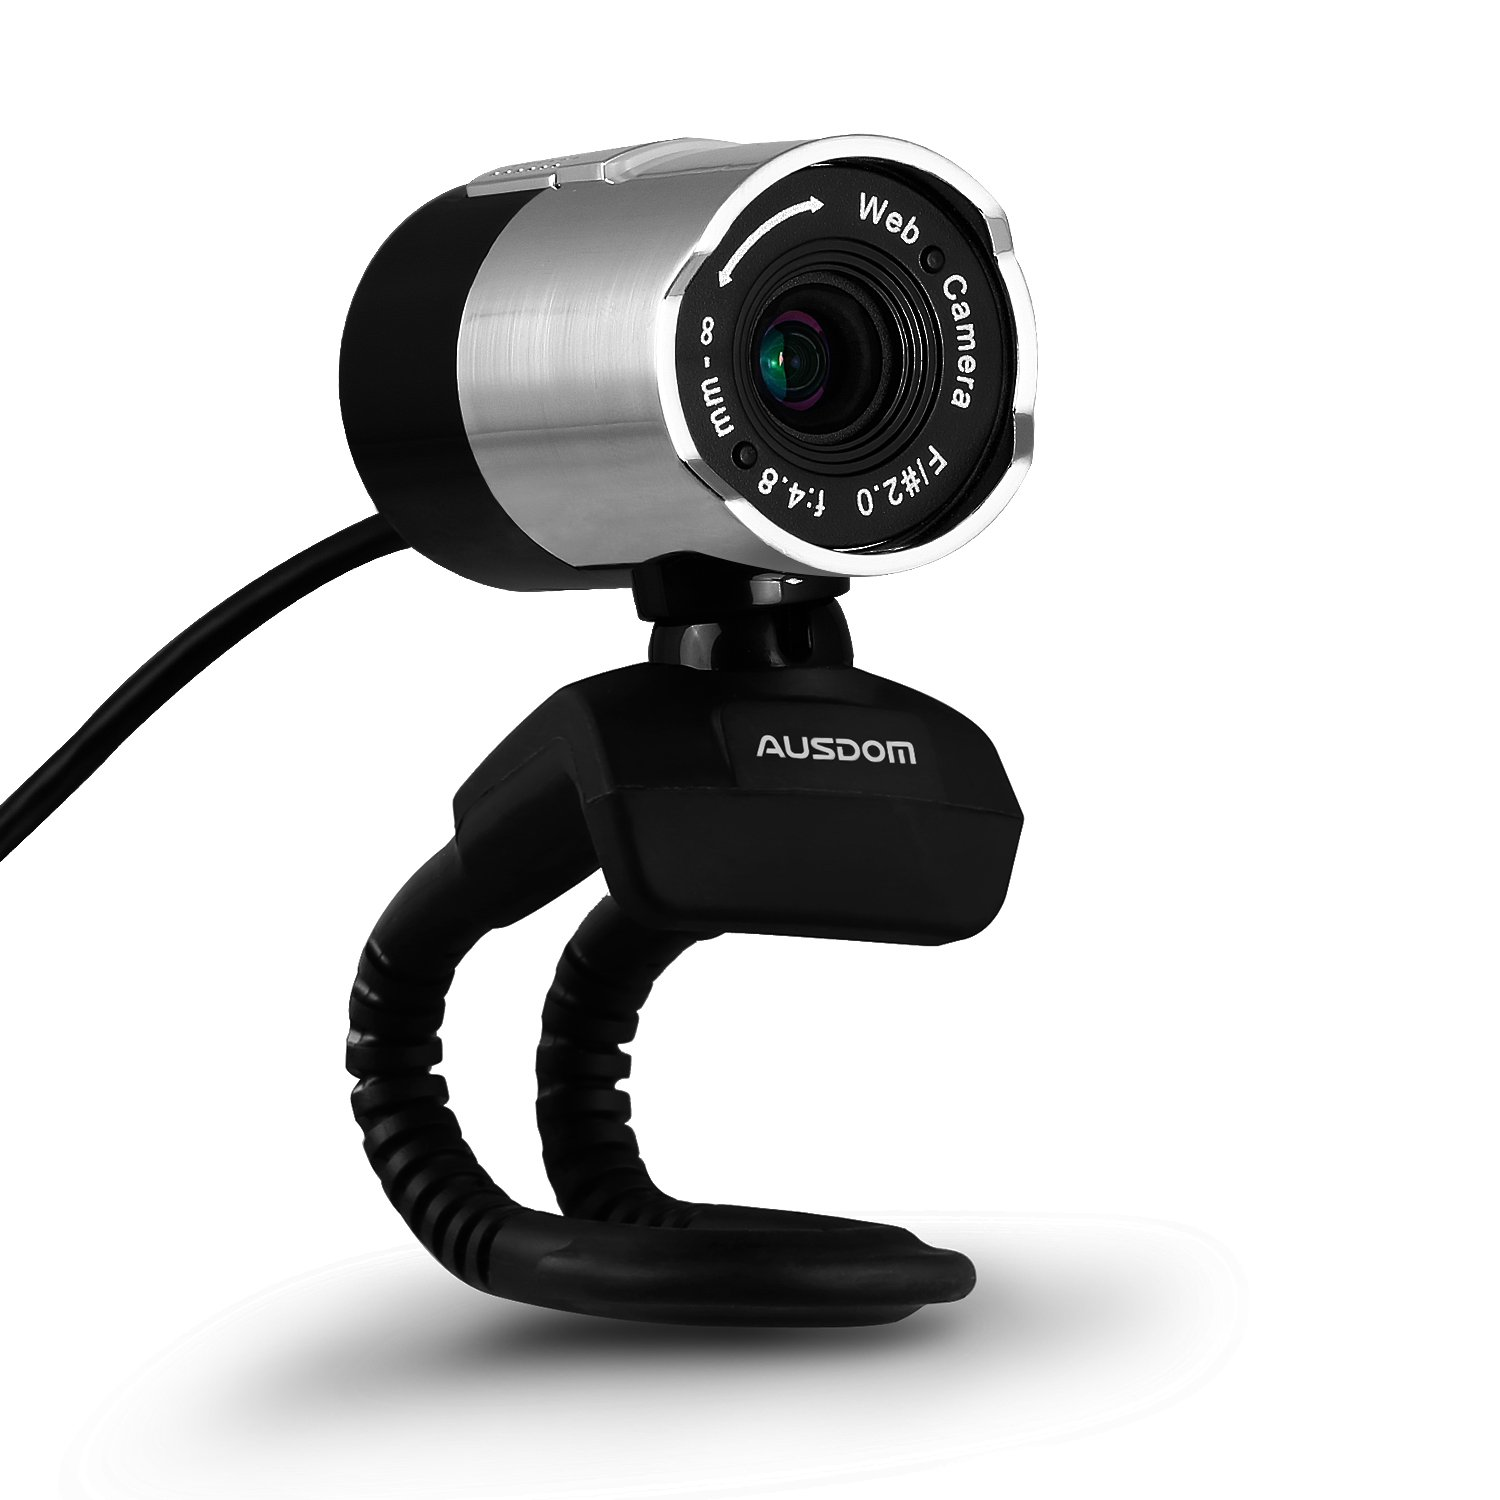 Amazon.com: AUSDOM HD Webcam 1080P USB Computer Camera Portable ...